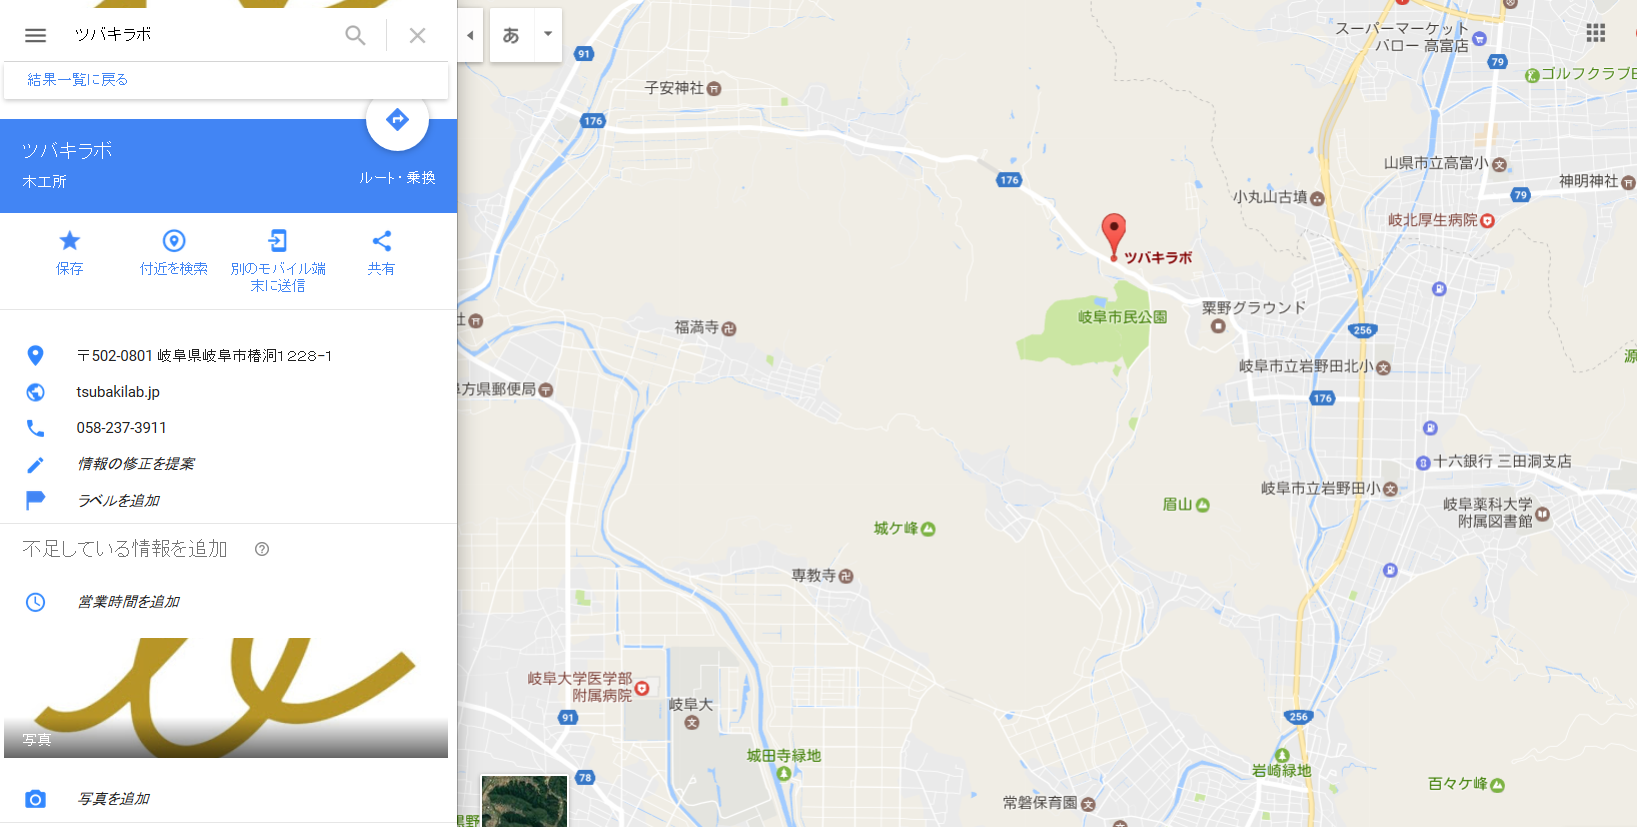 ツバキラボ tsubakilab google map